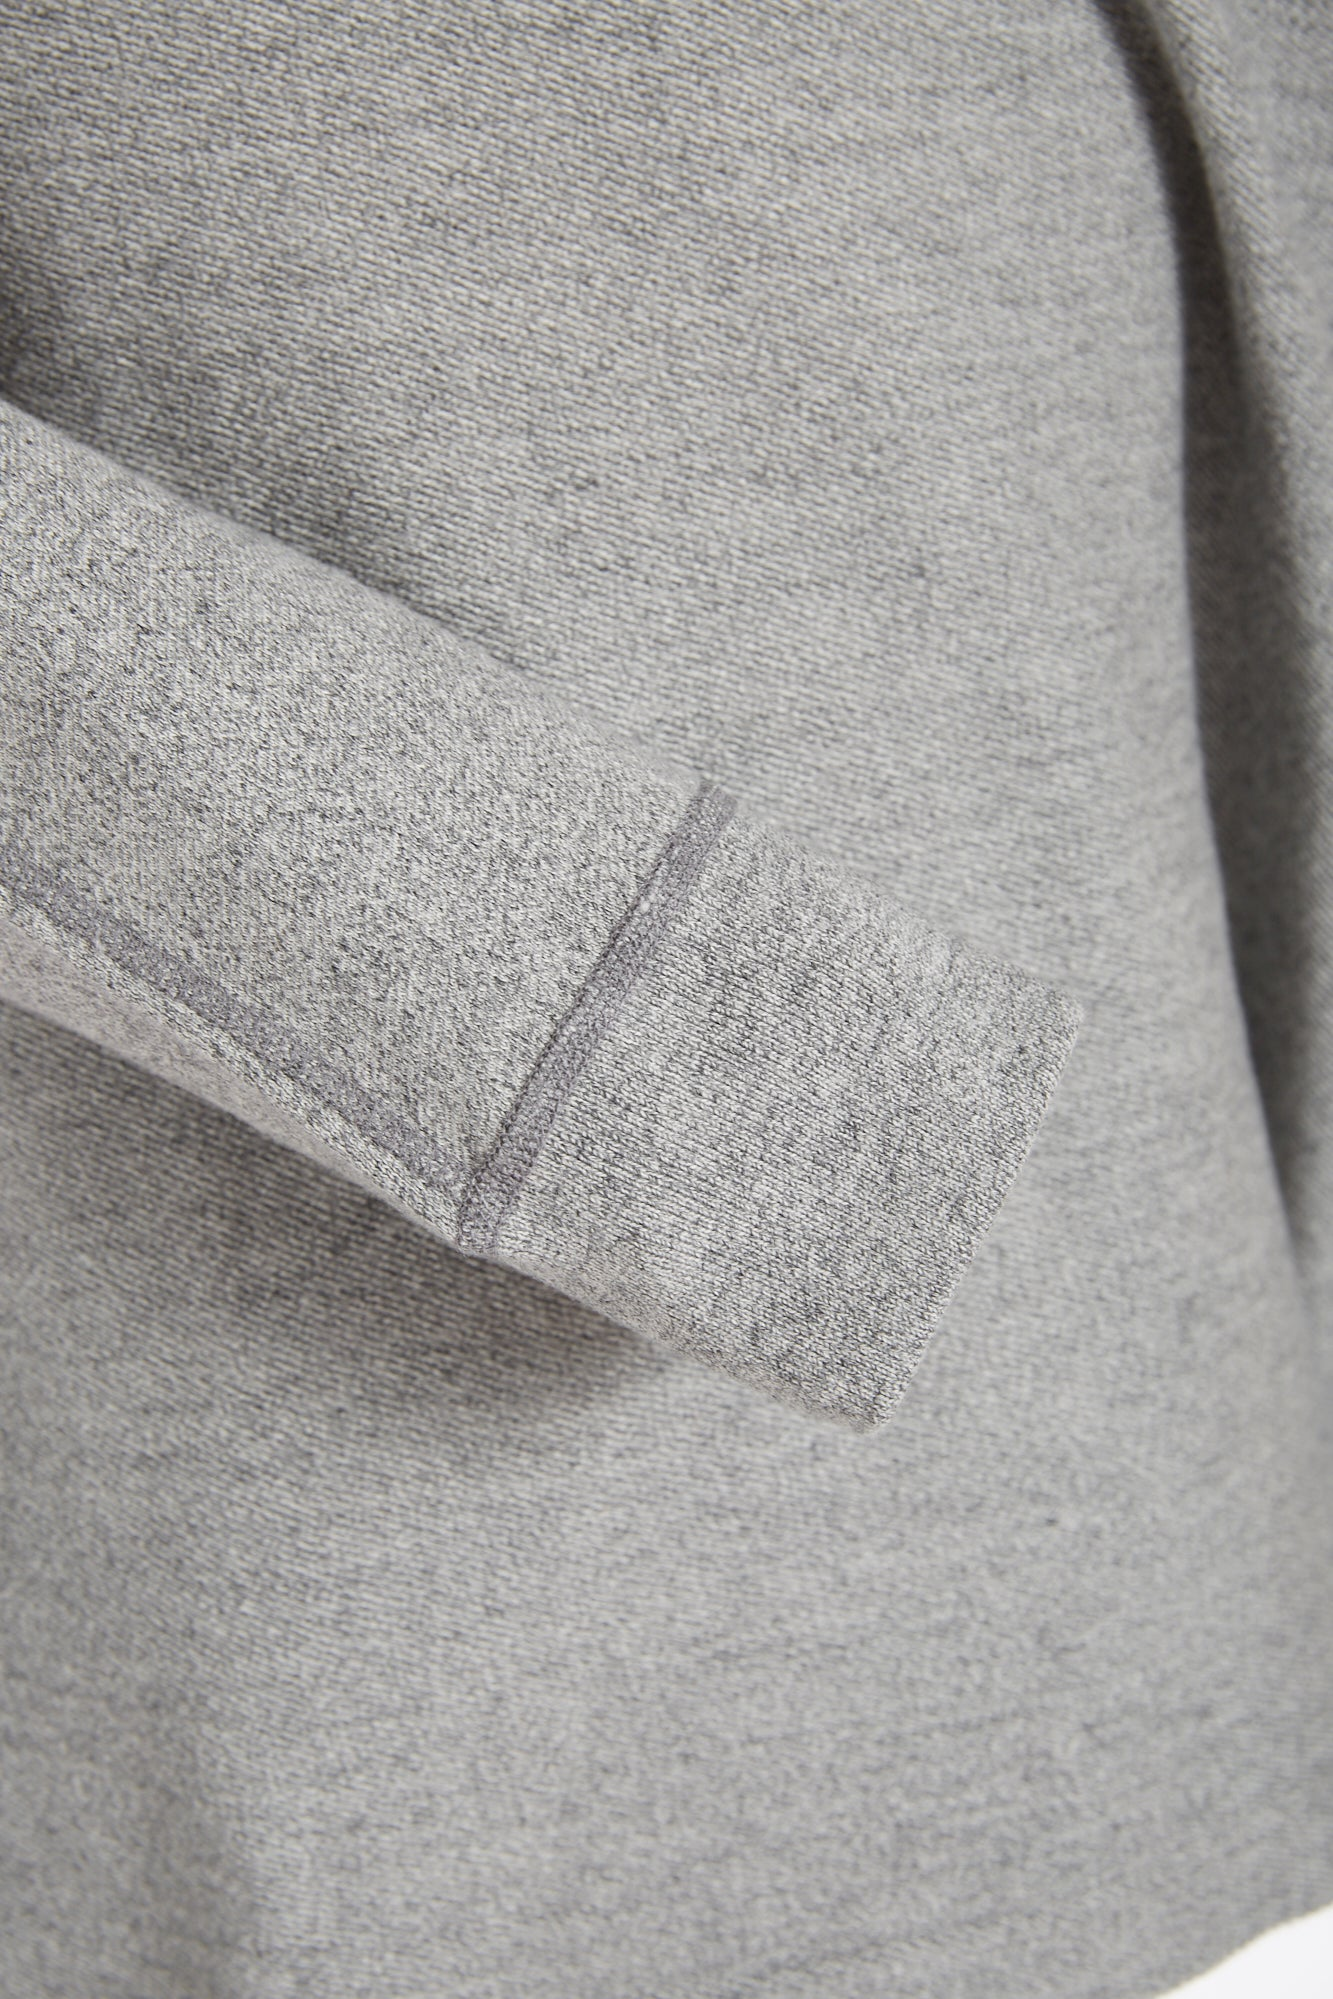 Reigning Champ Marled Grey Half Snap Pullover Sweater Cuff